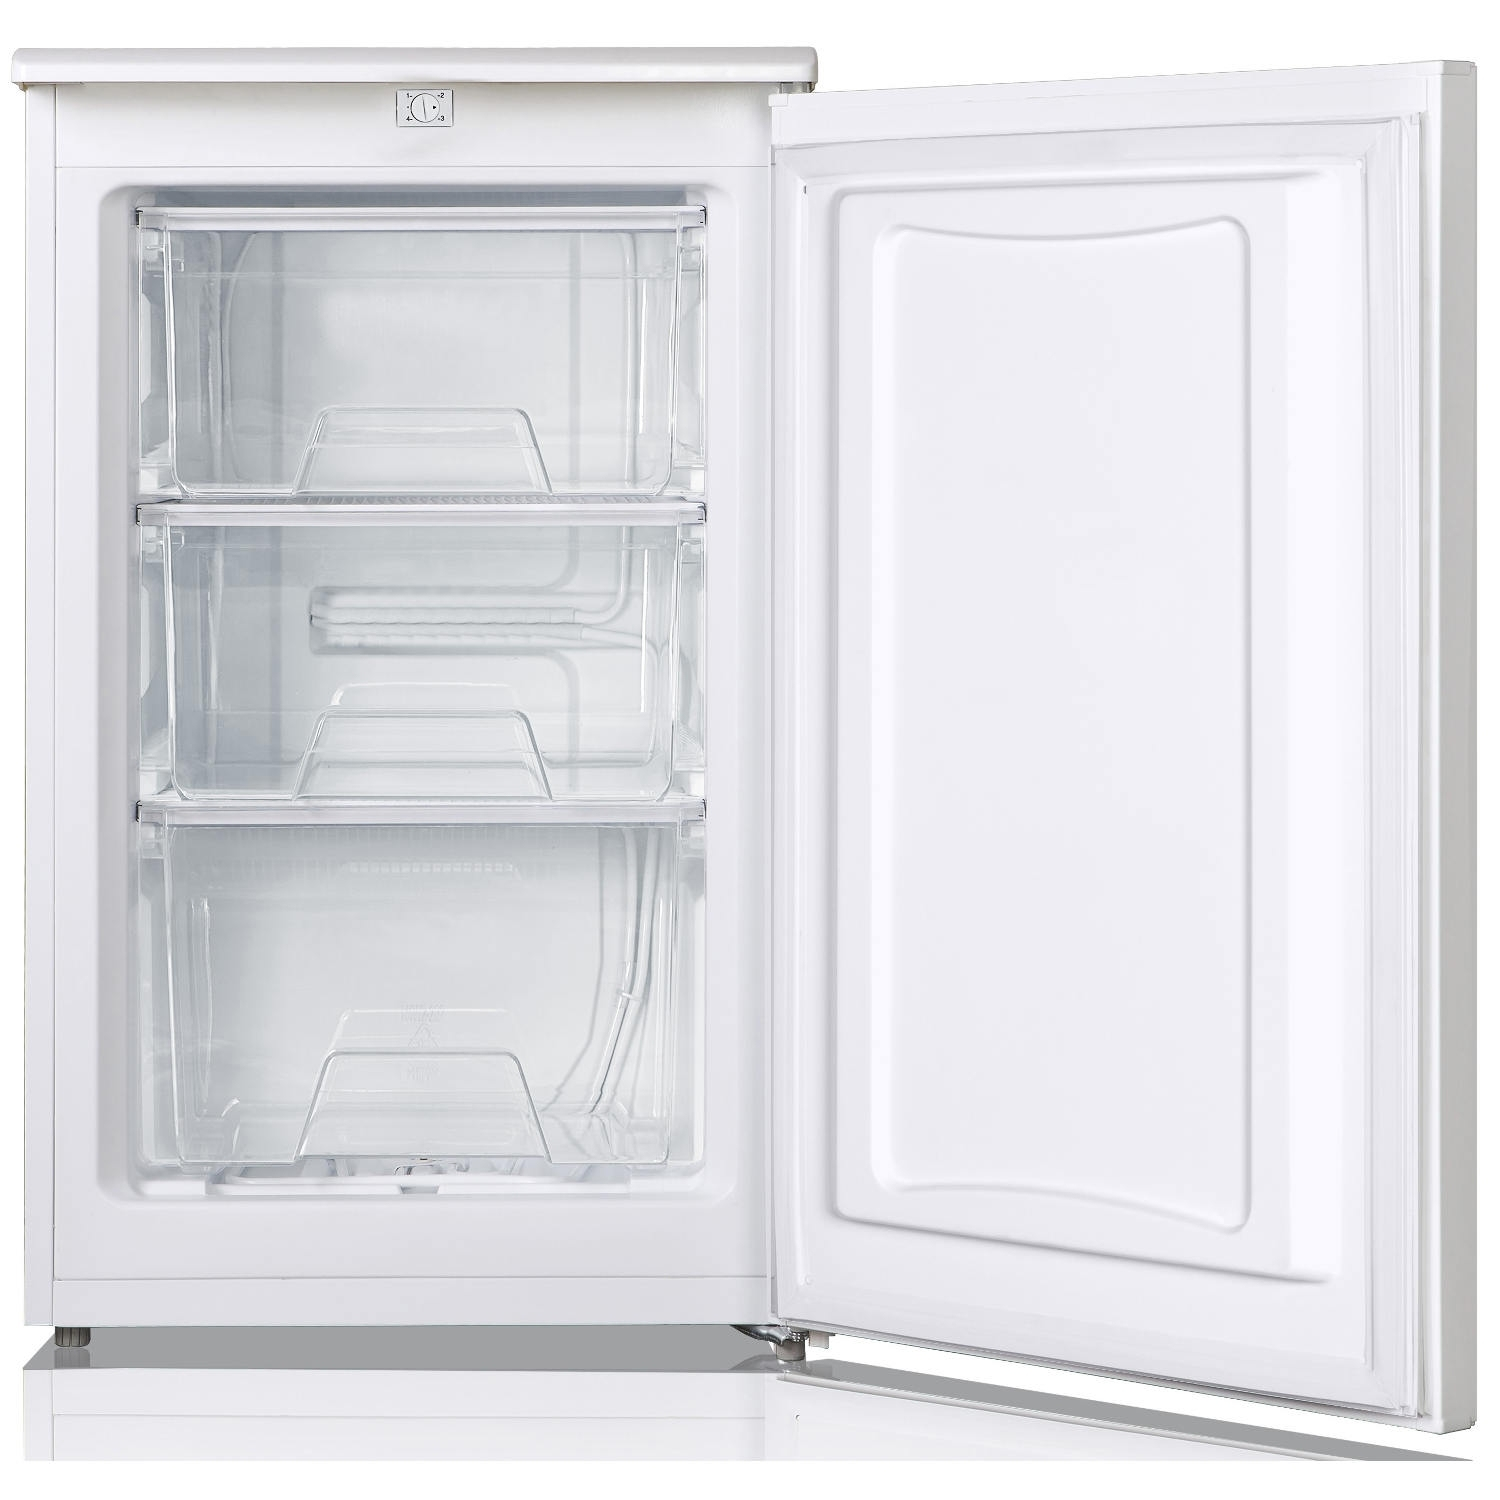 Lec 50cm Undercounter Freezer - White - A+ Rated - 1